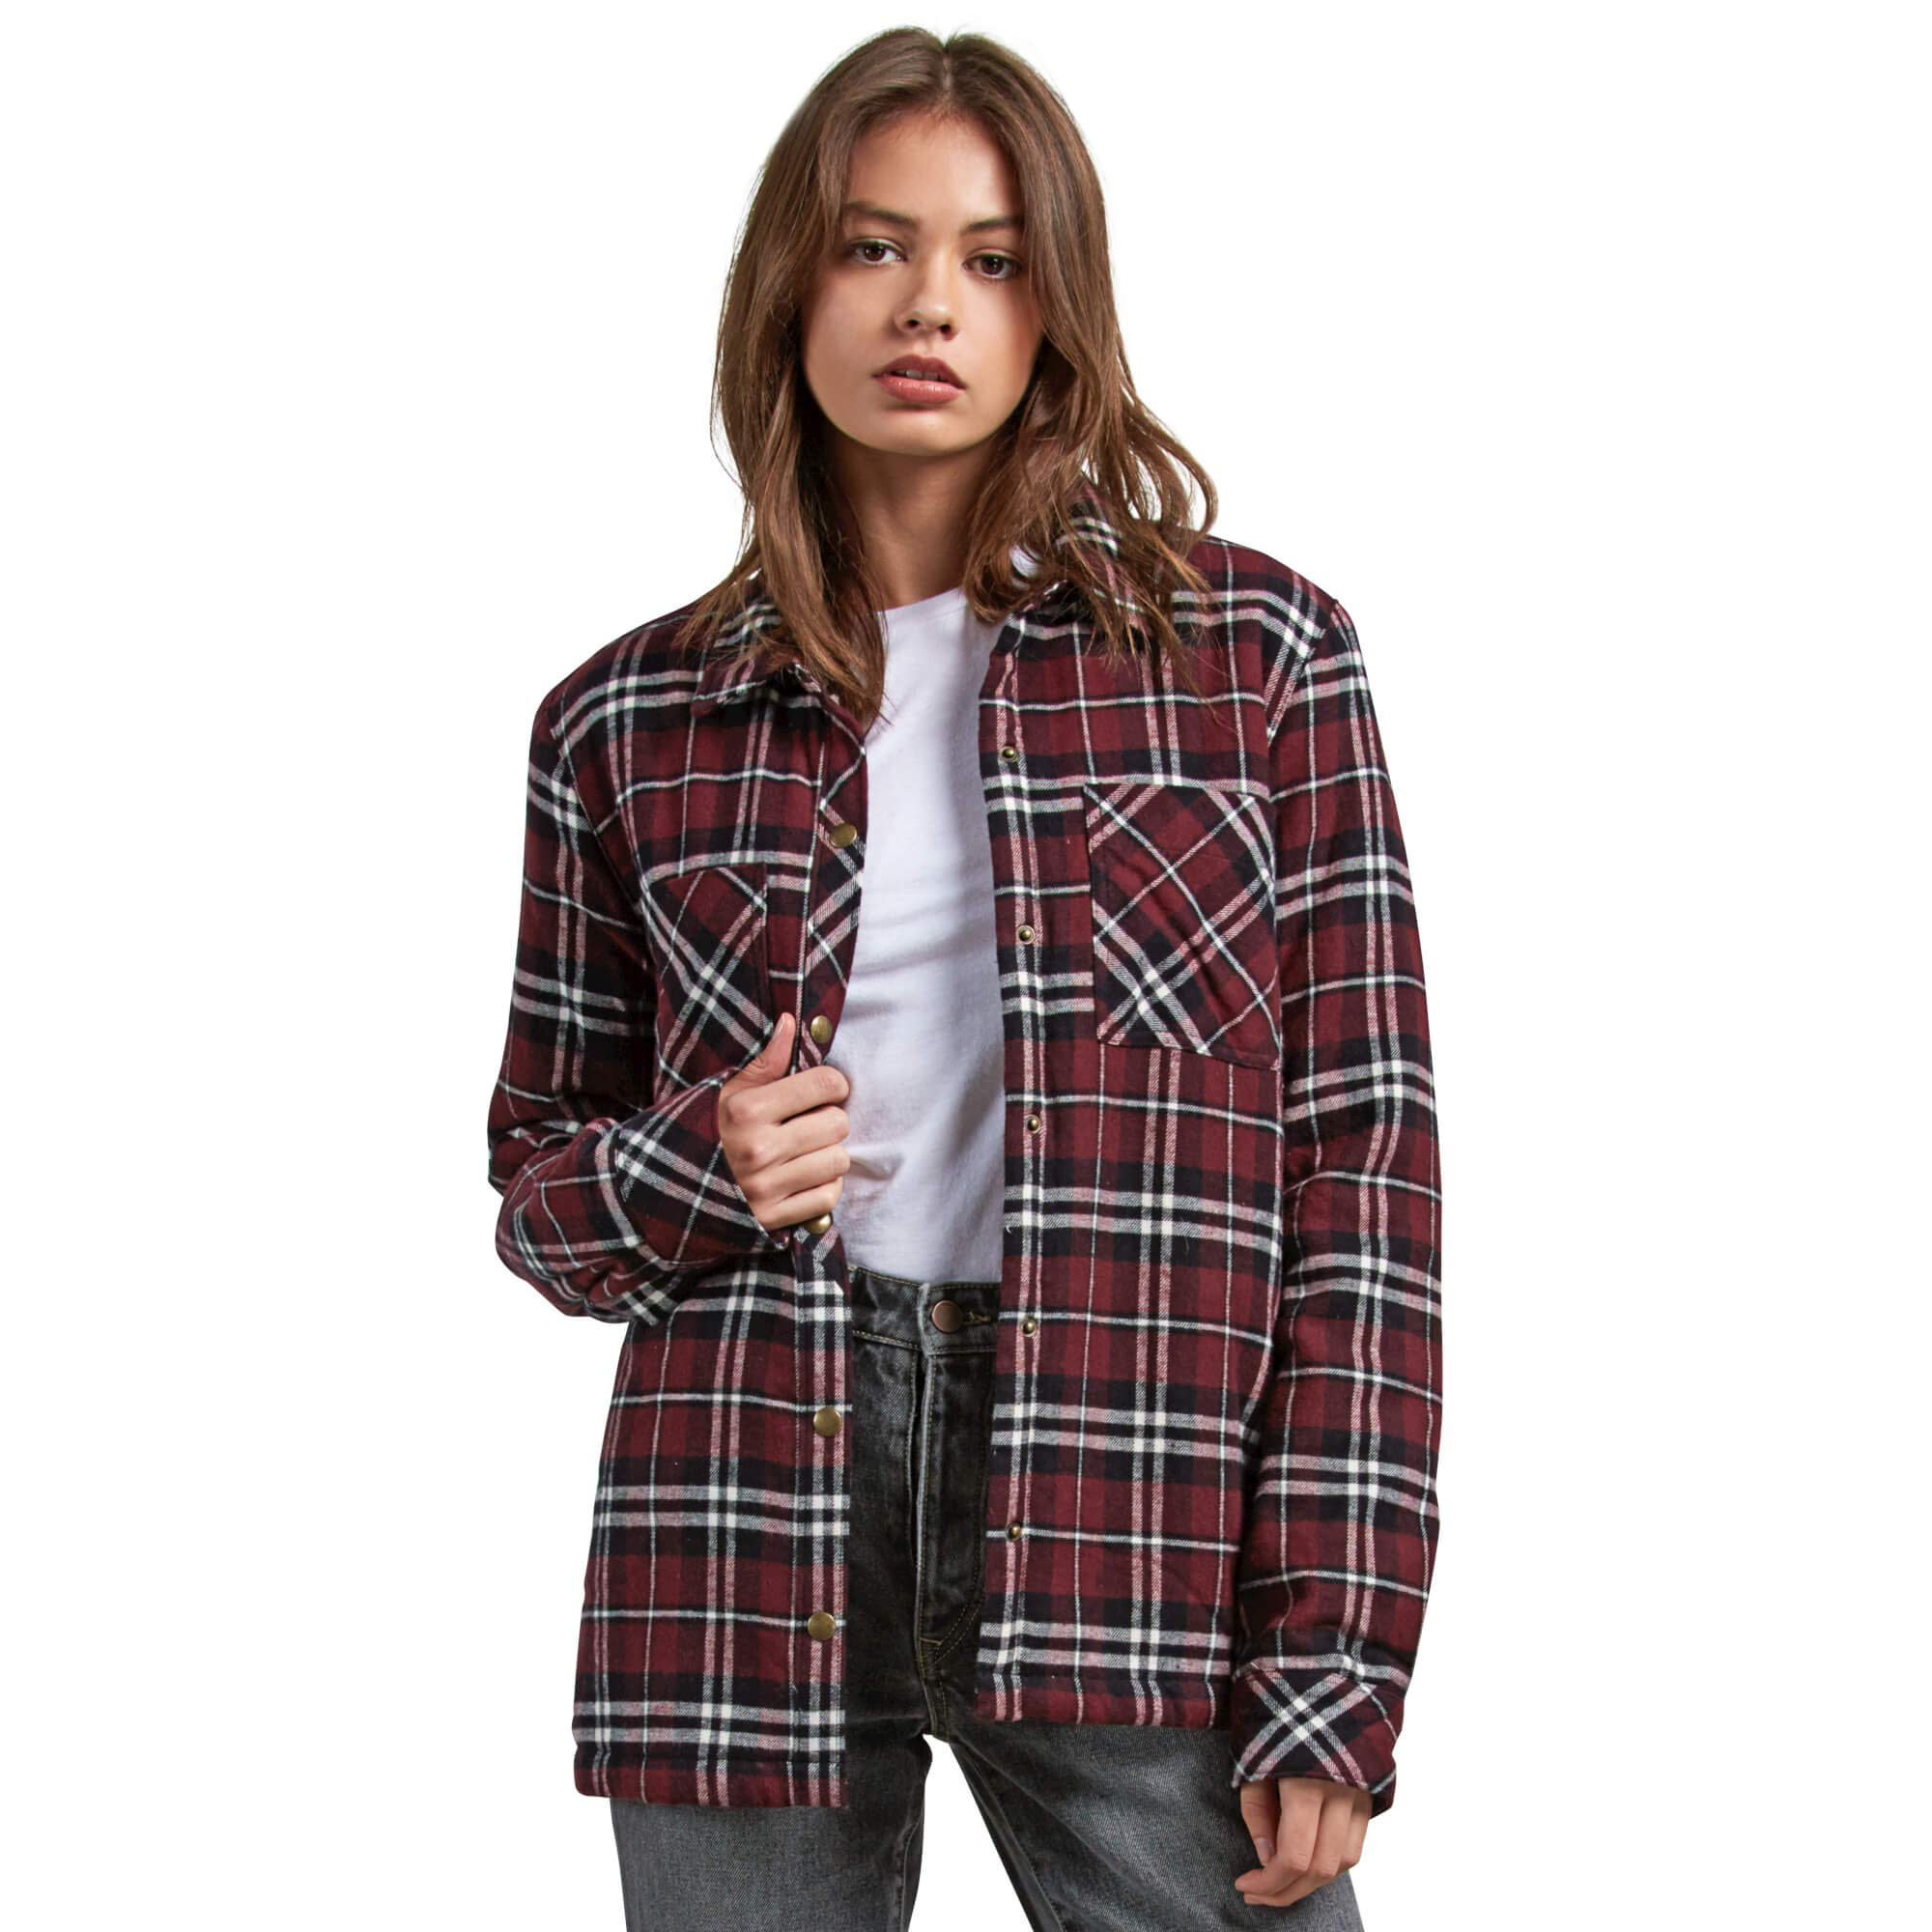 Volcom Junior's Plaid About You Relaxed Fit Long Sleeve Sherpa Lined Flannel, Burgundy, Extra Small by Volcom